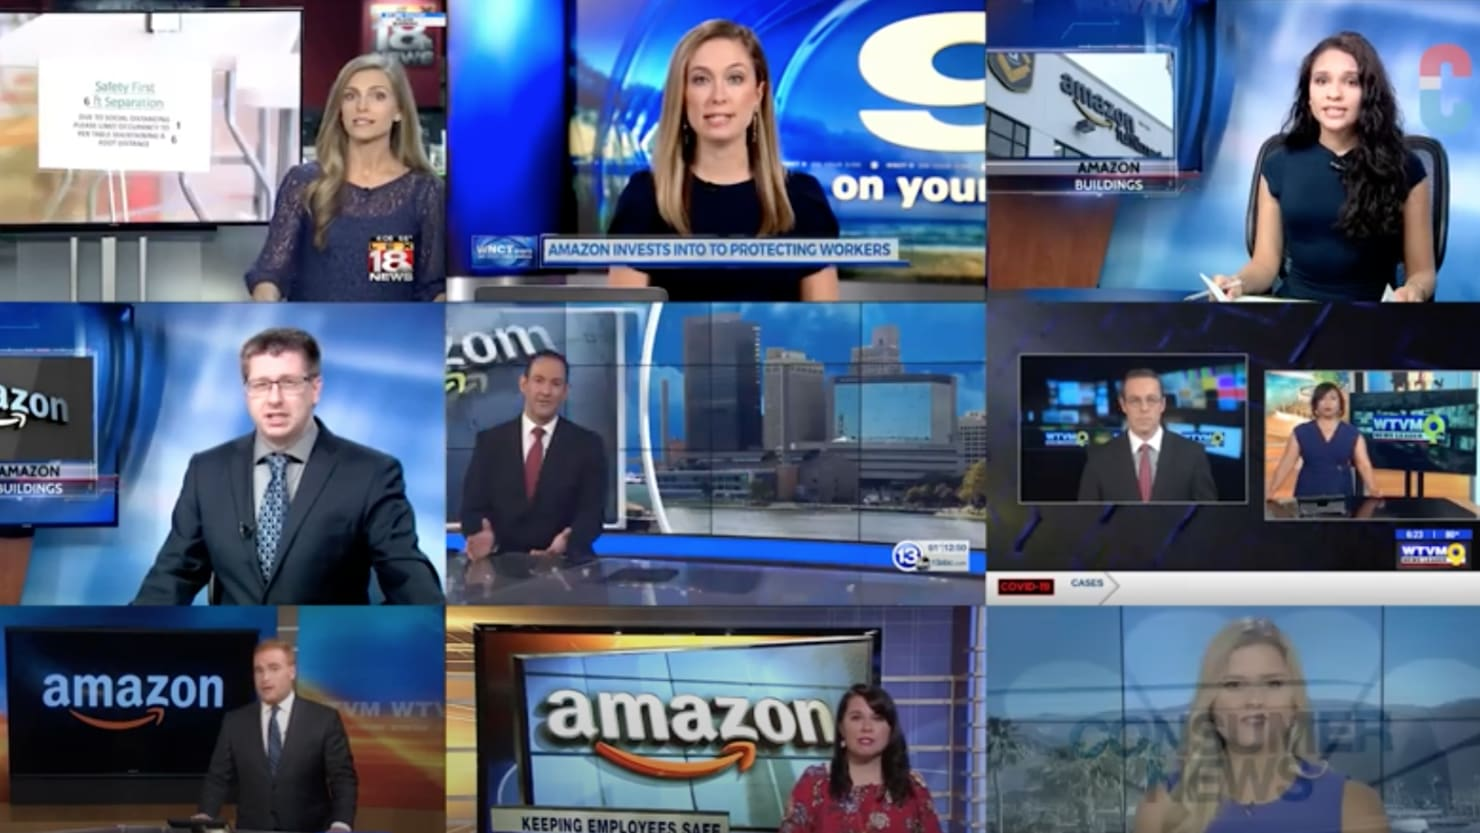 11 Local TV Stations All Aired the Same Puff Piece Written for Them by Amazon